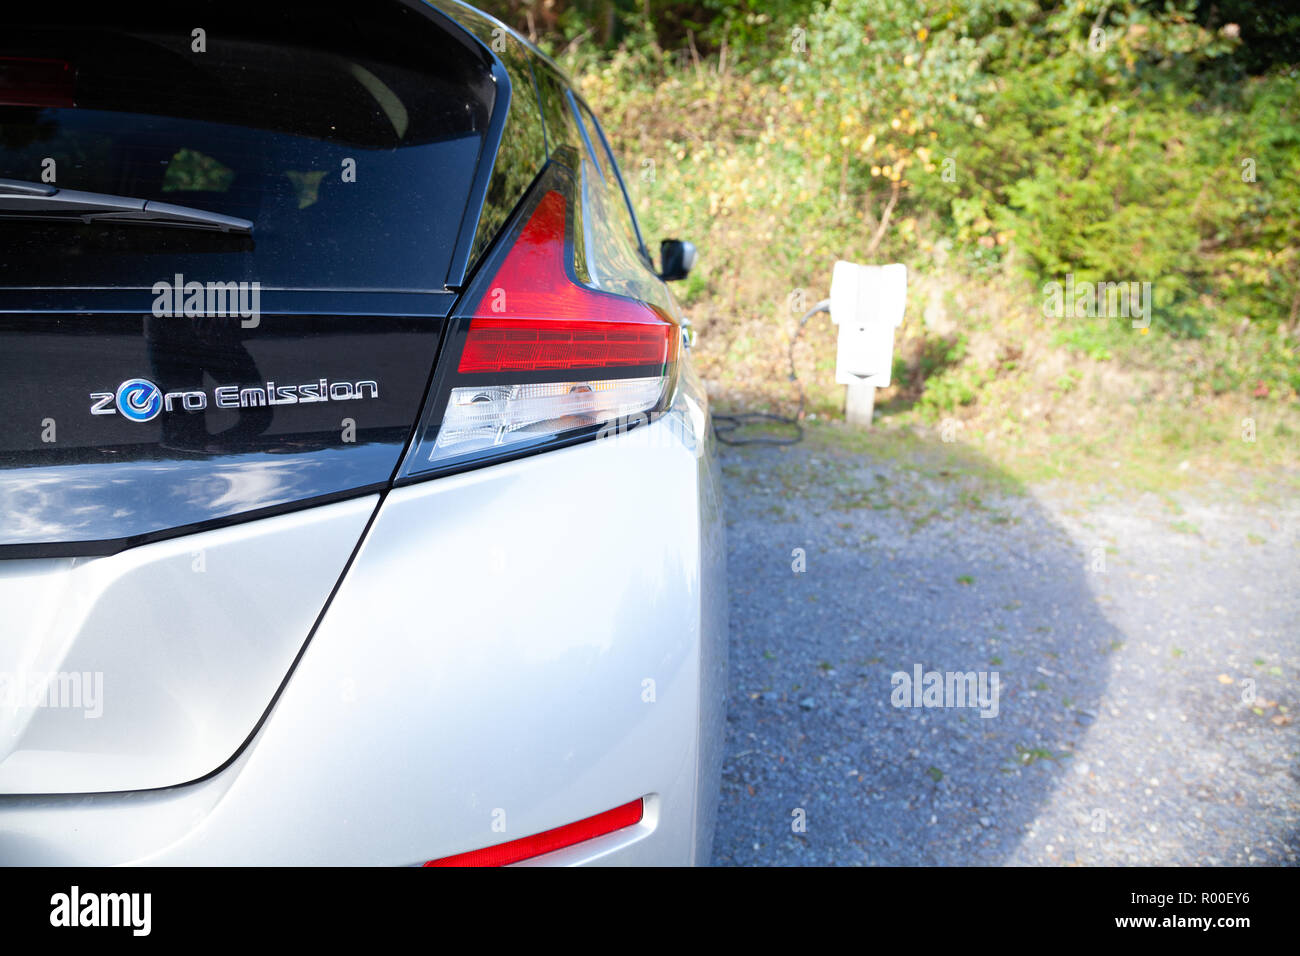 Nissan Leaf 2018 charging at a National Trust Wales free electric car charging station in Penrhyn Castle, Bangor, North Wales Stock Photo